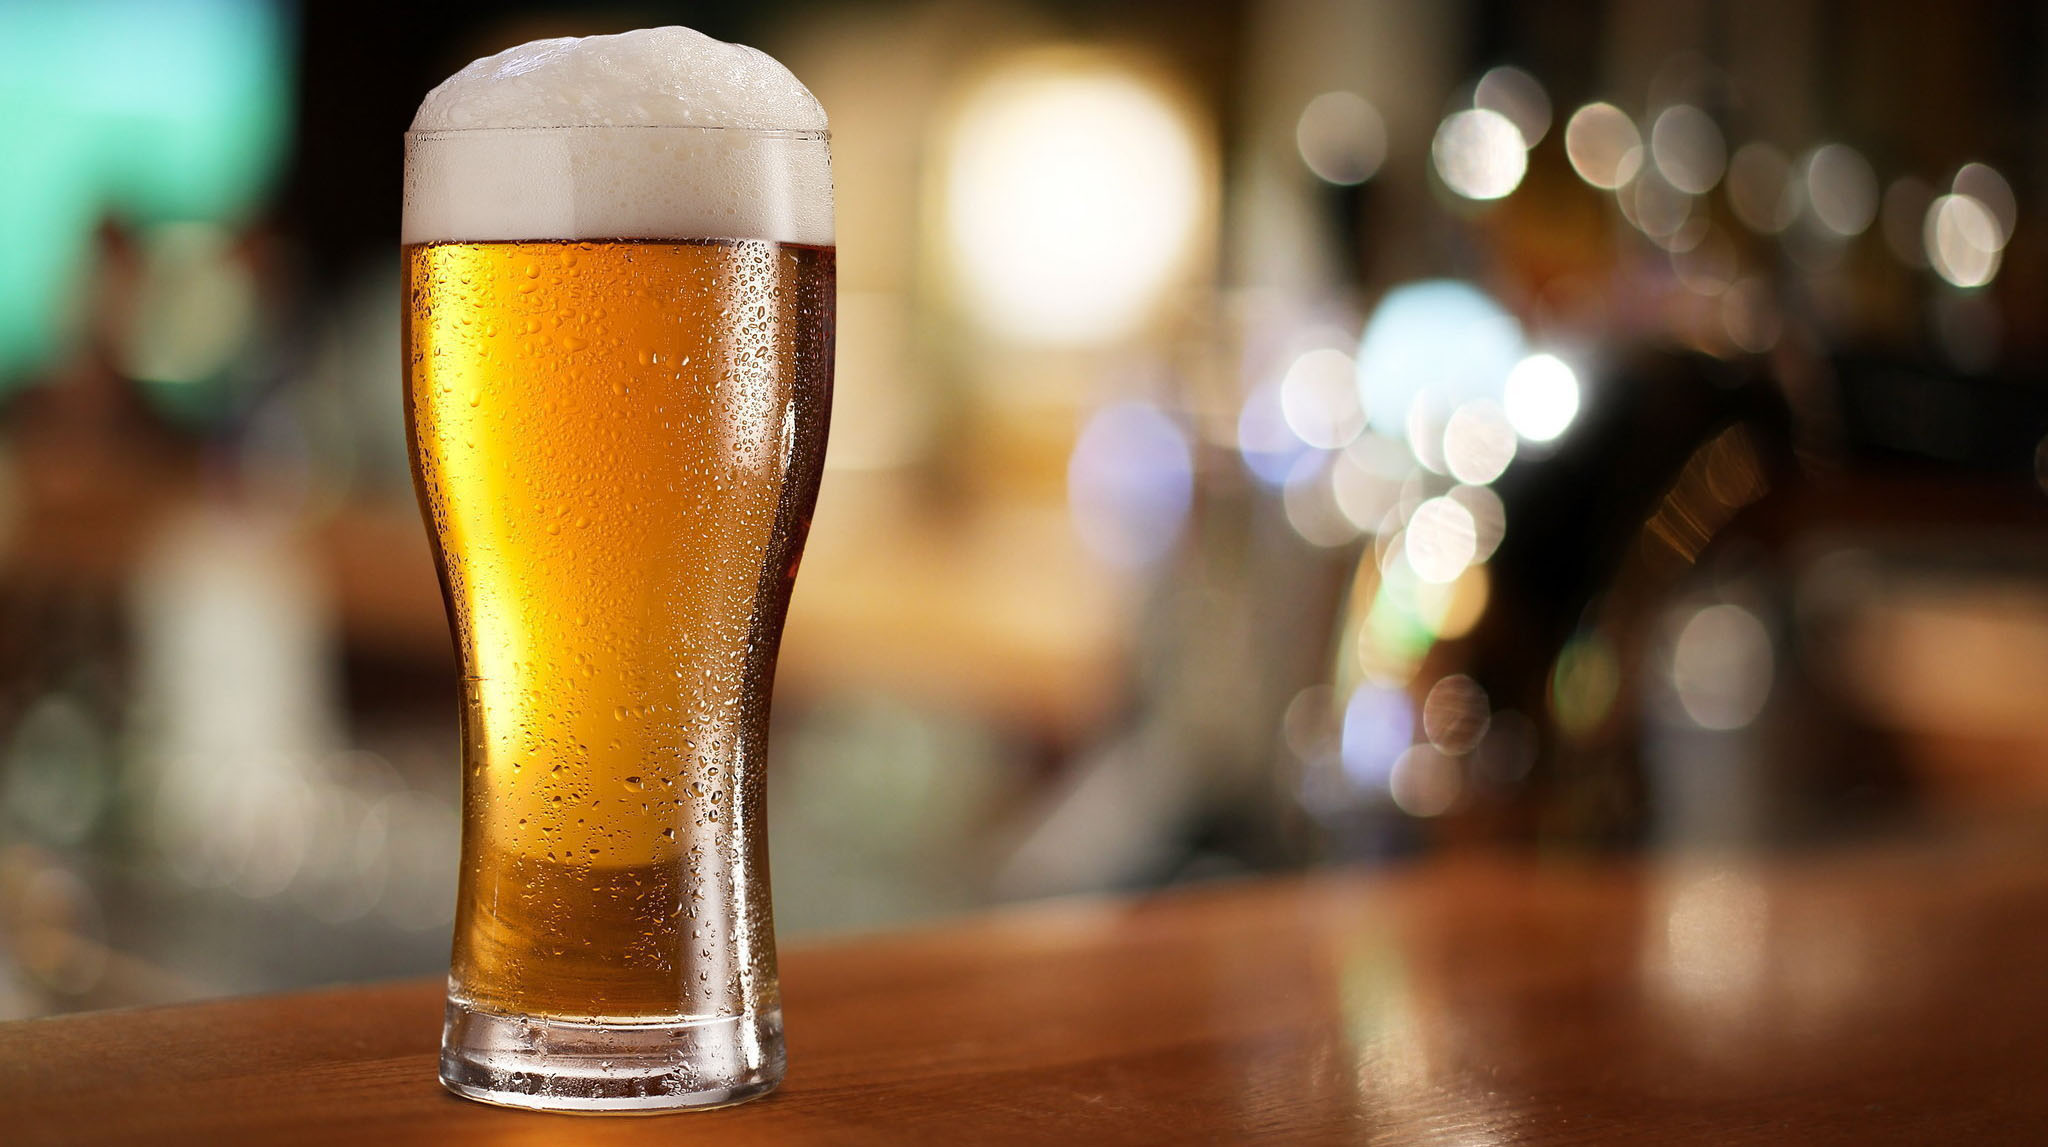 Beer companies unite together to quench thirst of their consumers